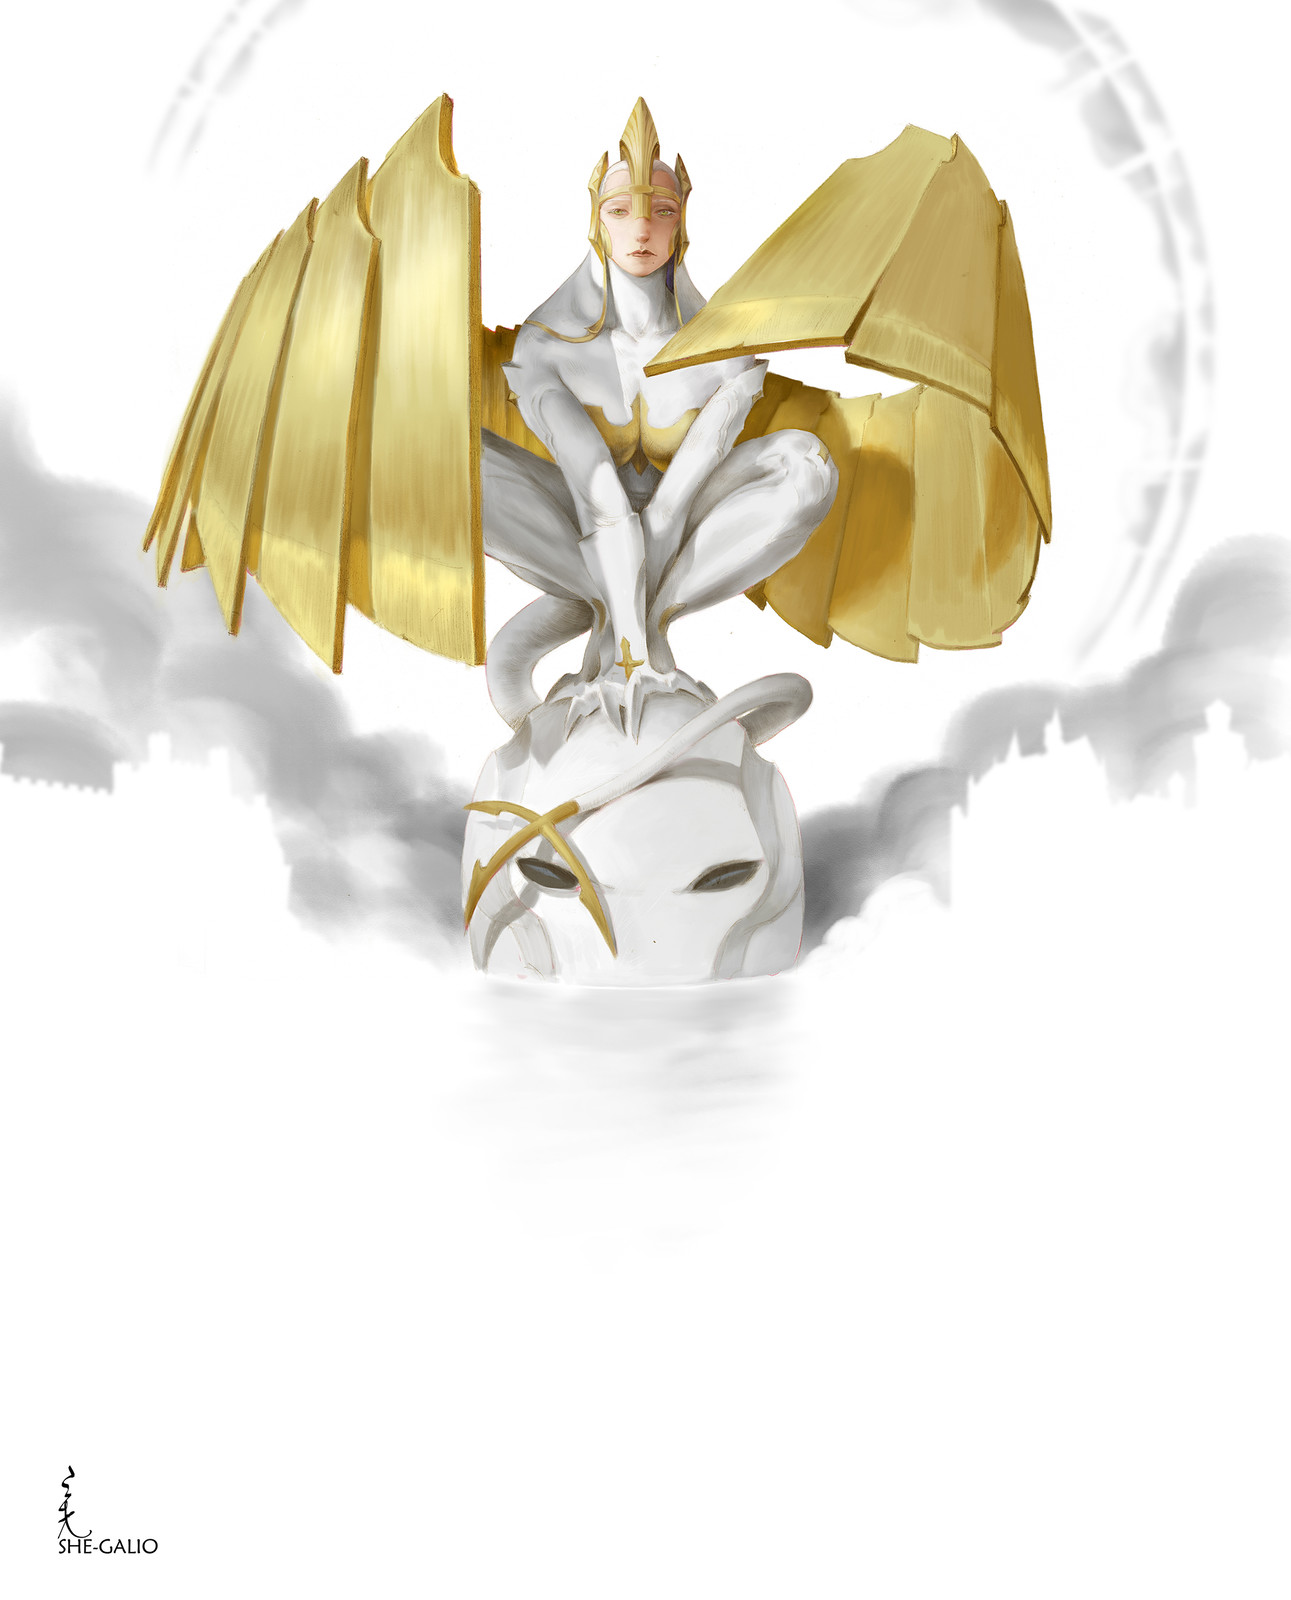 SHE-GALIO II